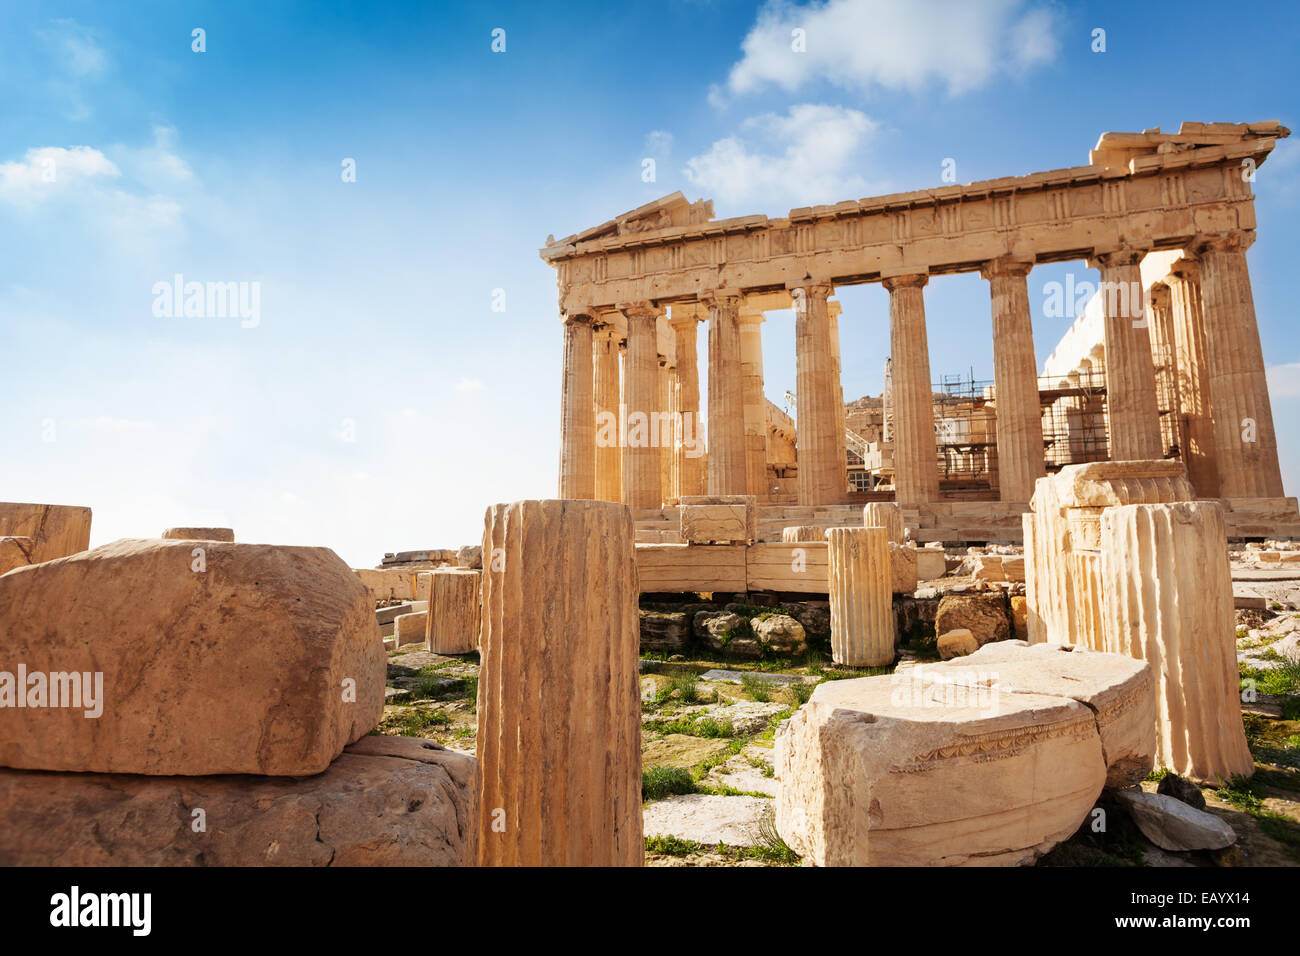 Acropolis of Athens in Greece during summer - Stock Image